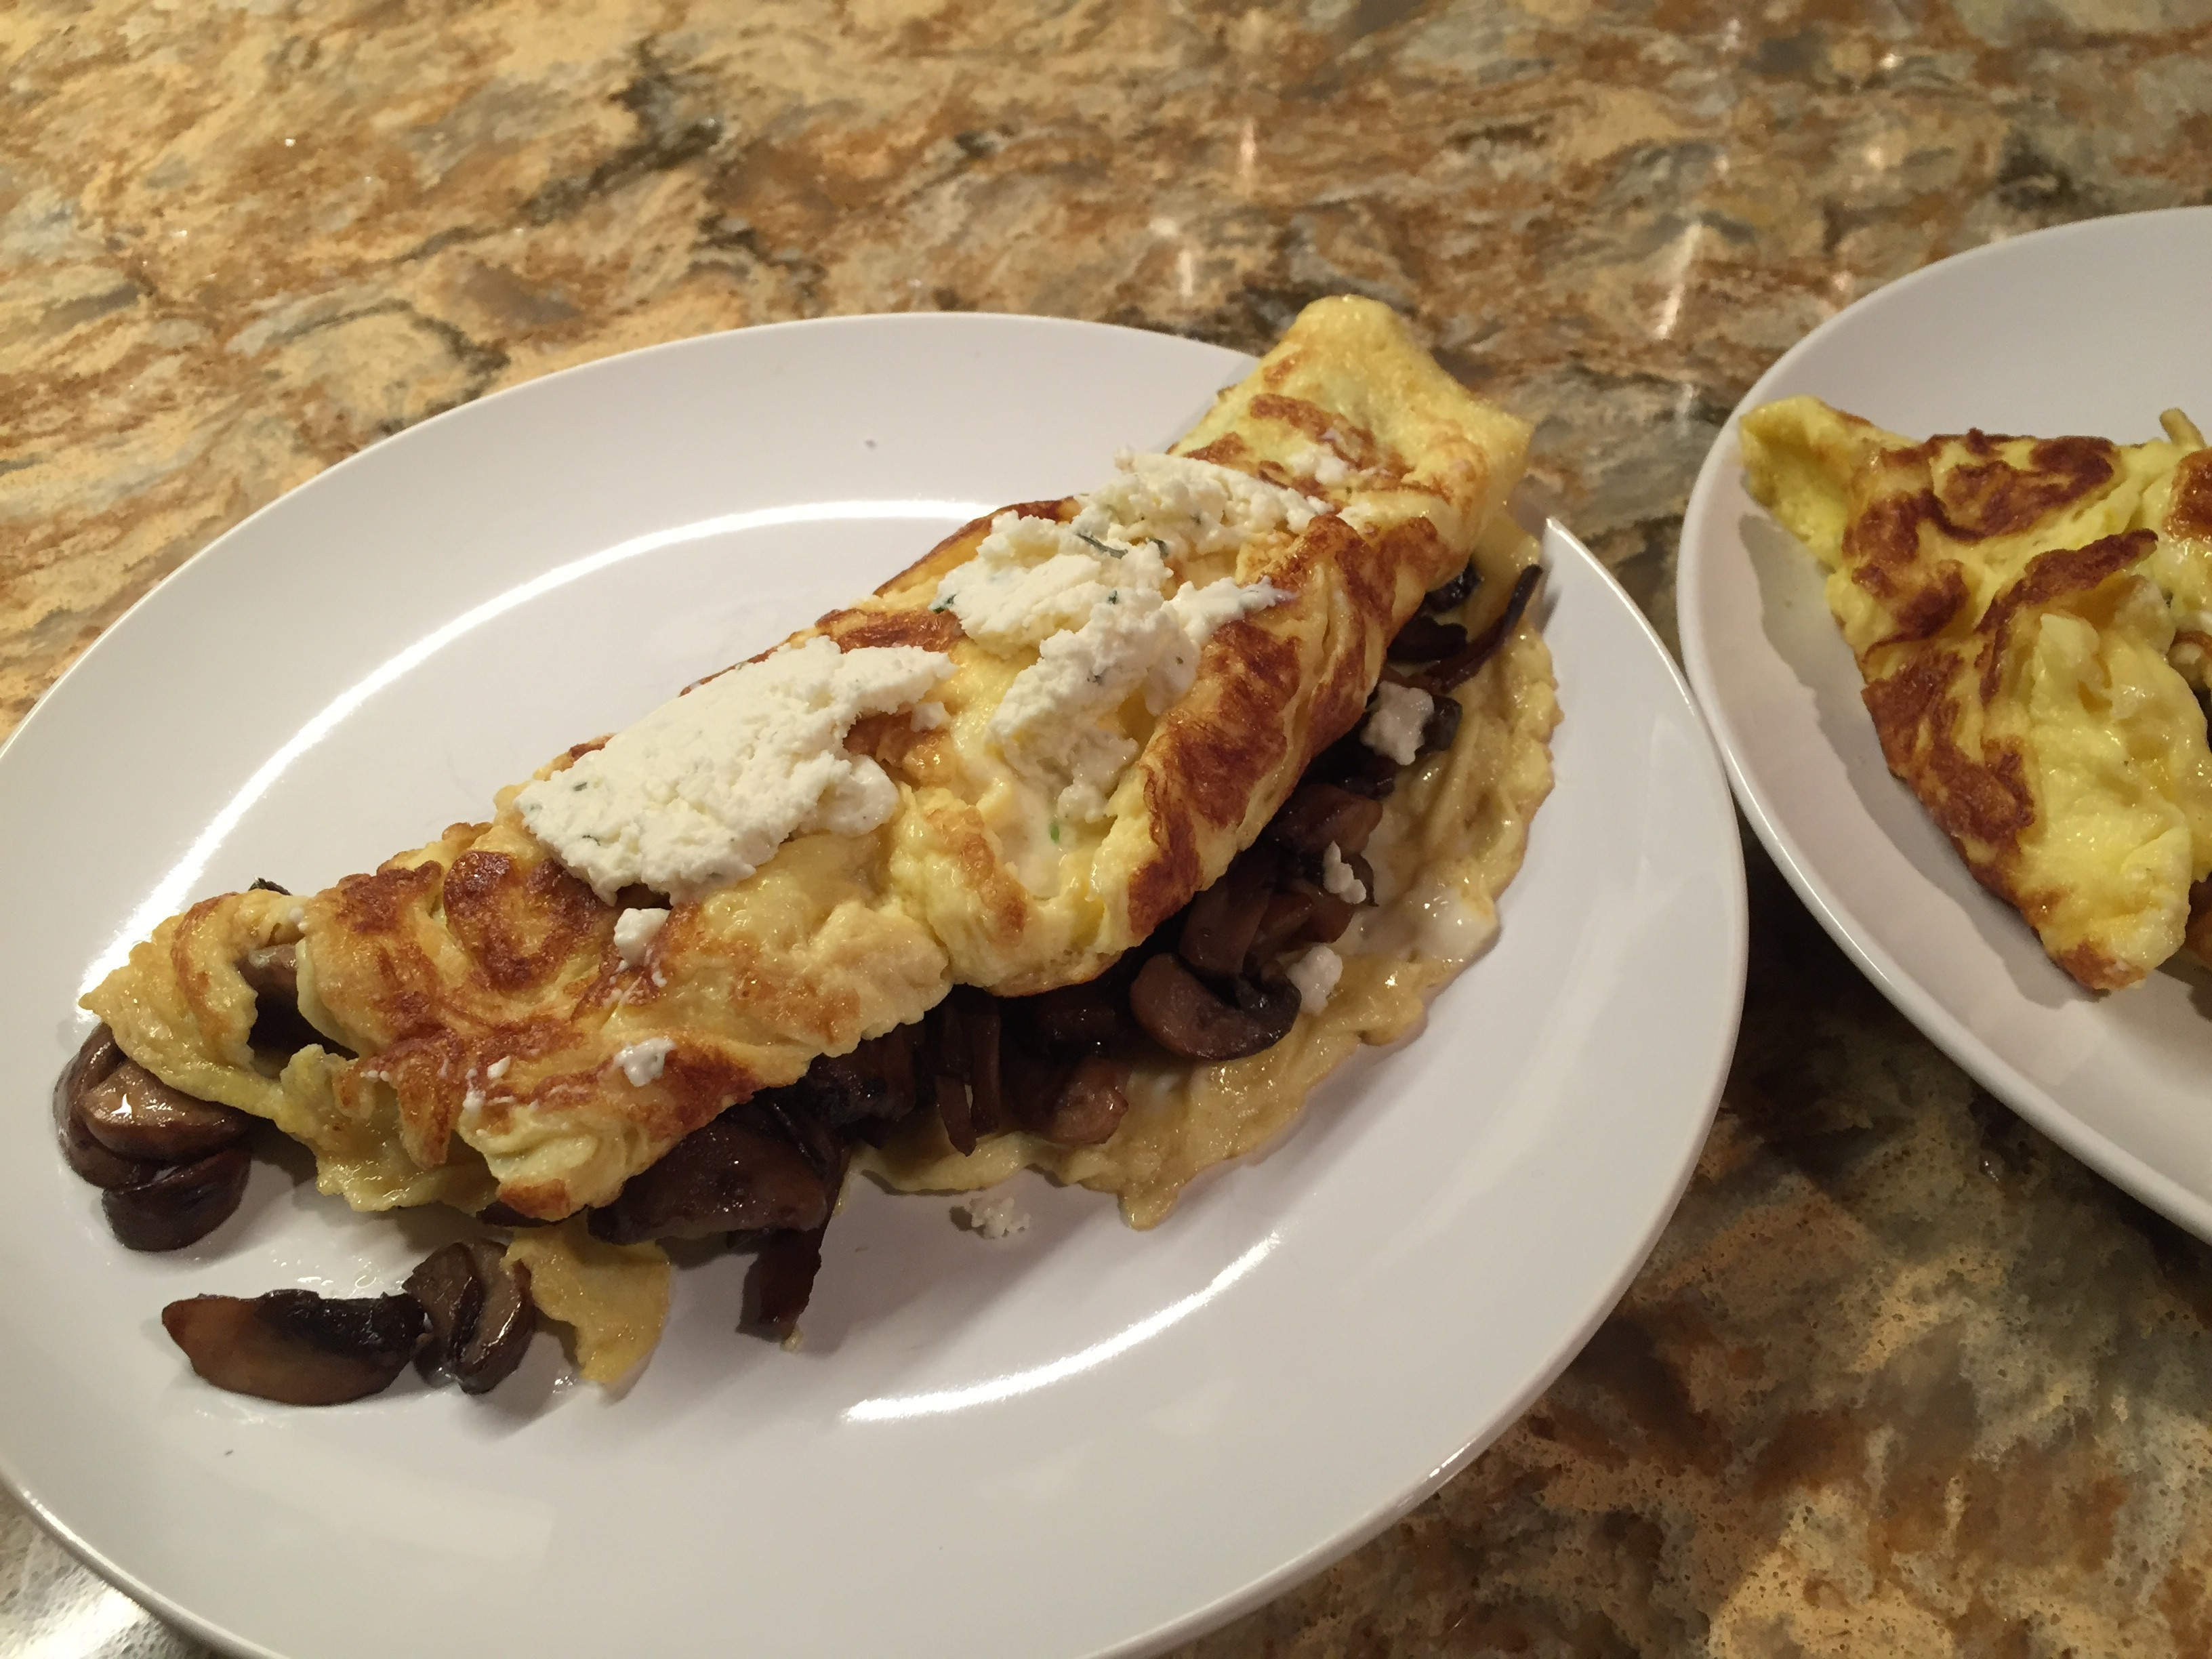 Not Paleo, but dang good Cheesy Mushroom Omelettes